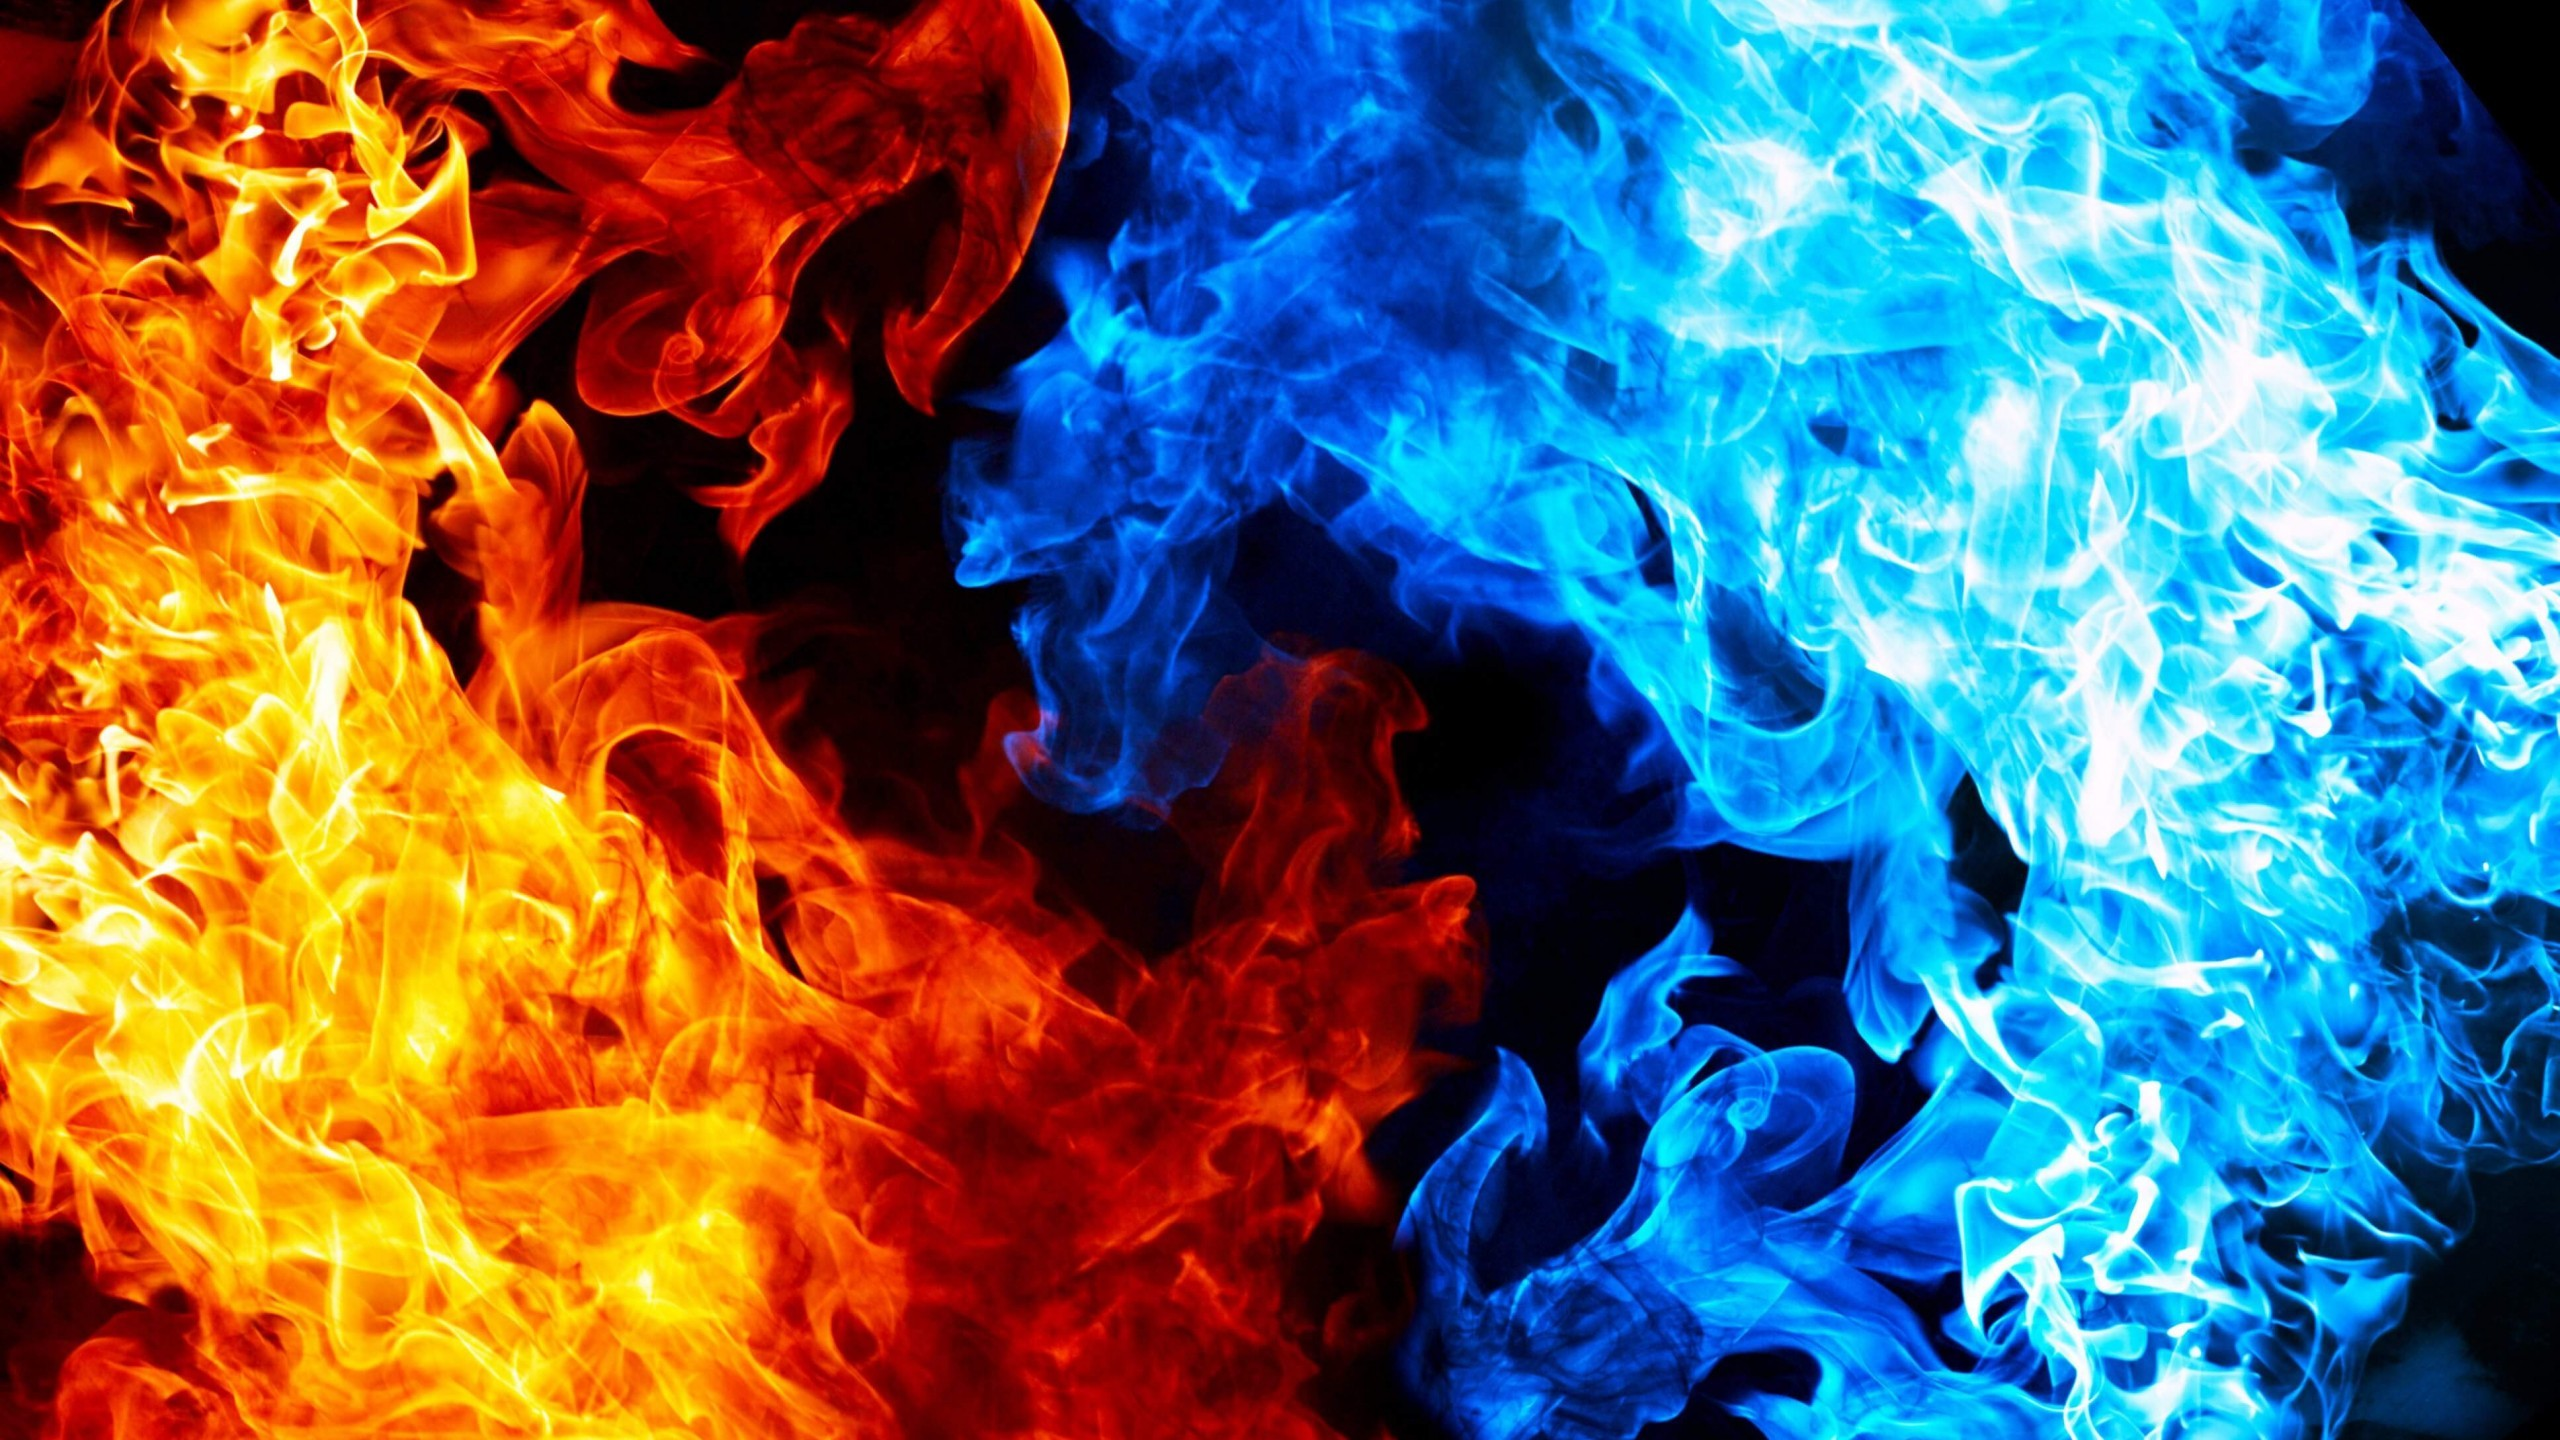 blue and red fire wallpaper 65 images. Black Bedroom Furniture Sets. Home Design Ideas